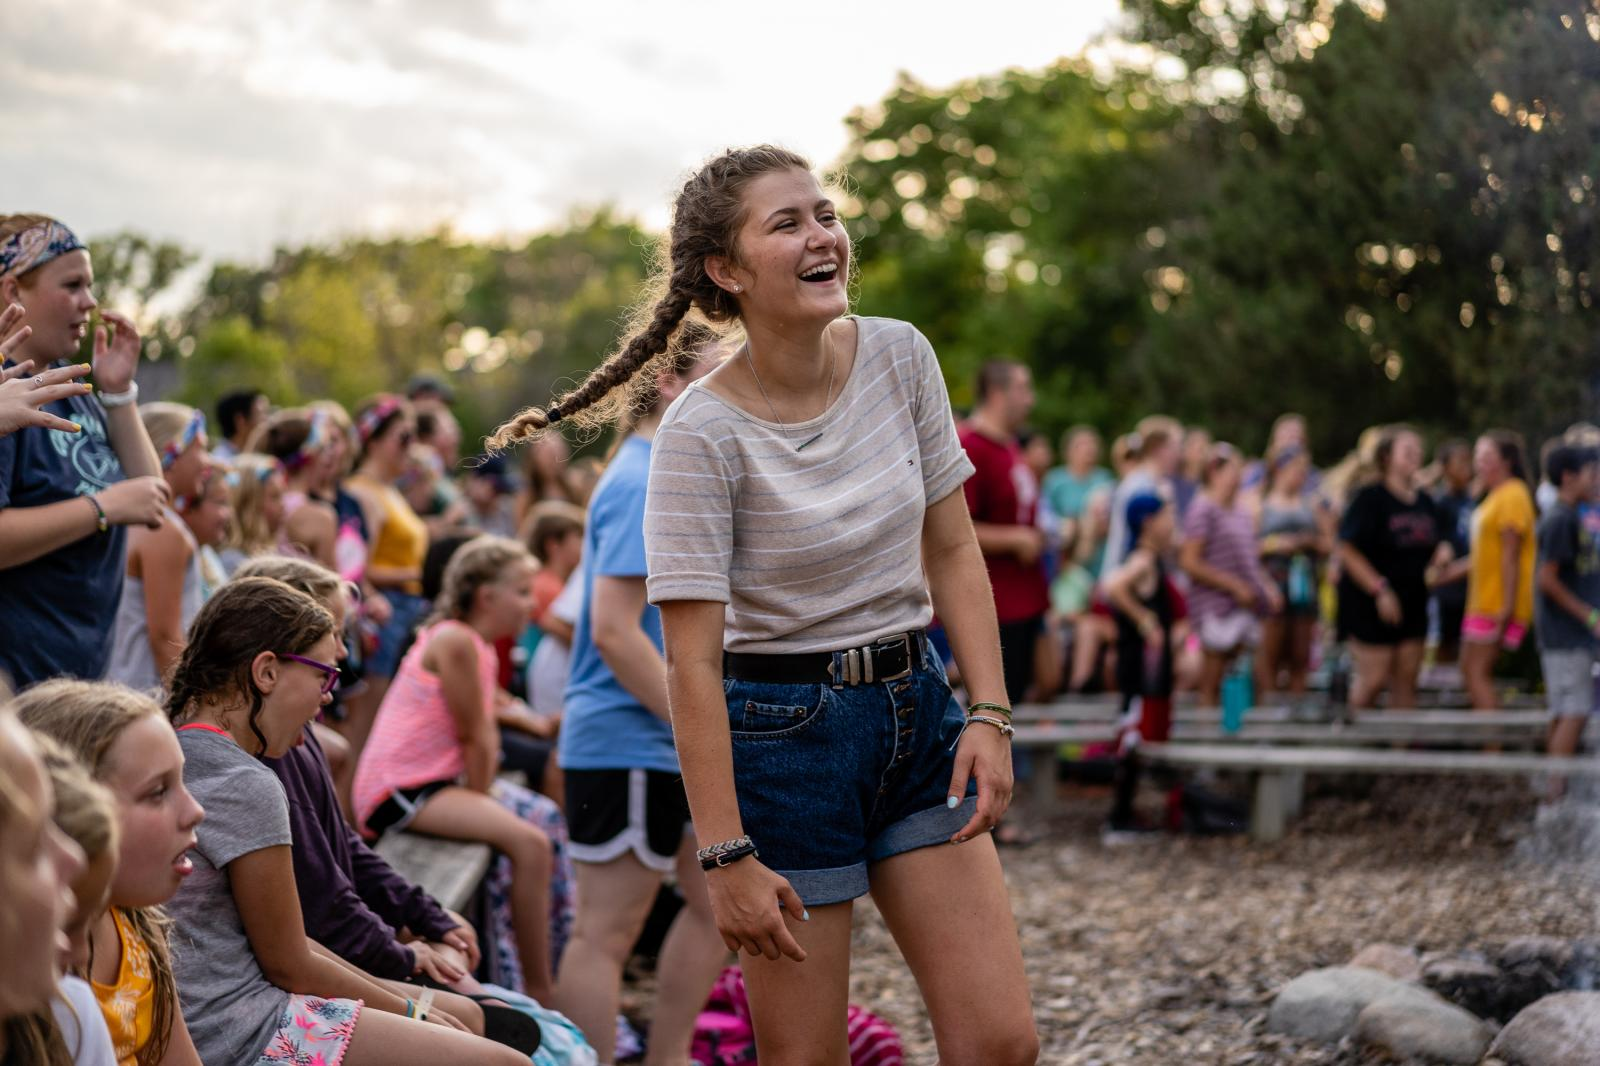 Campers sing fellowship songs at Riverside Lutheran Bible Camp in Story City, Iowa on Tuesday, July 16, 2019. ©2019 KC McGinnis